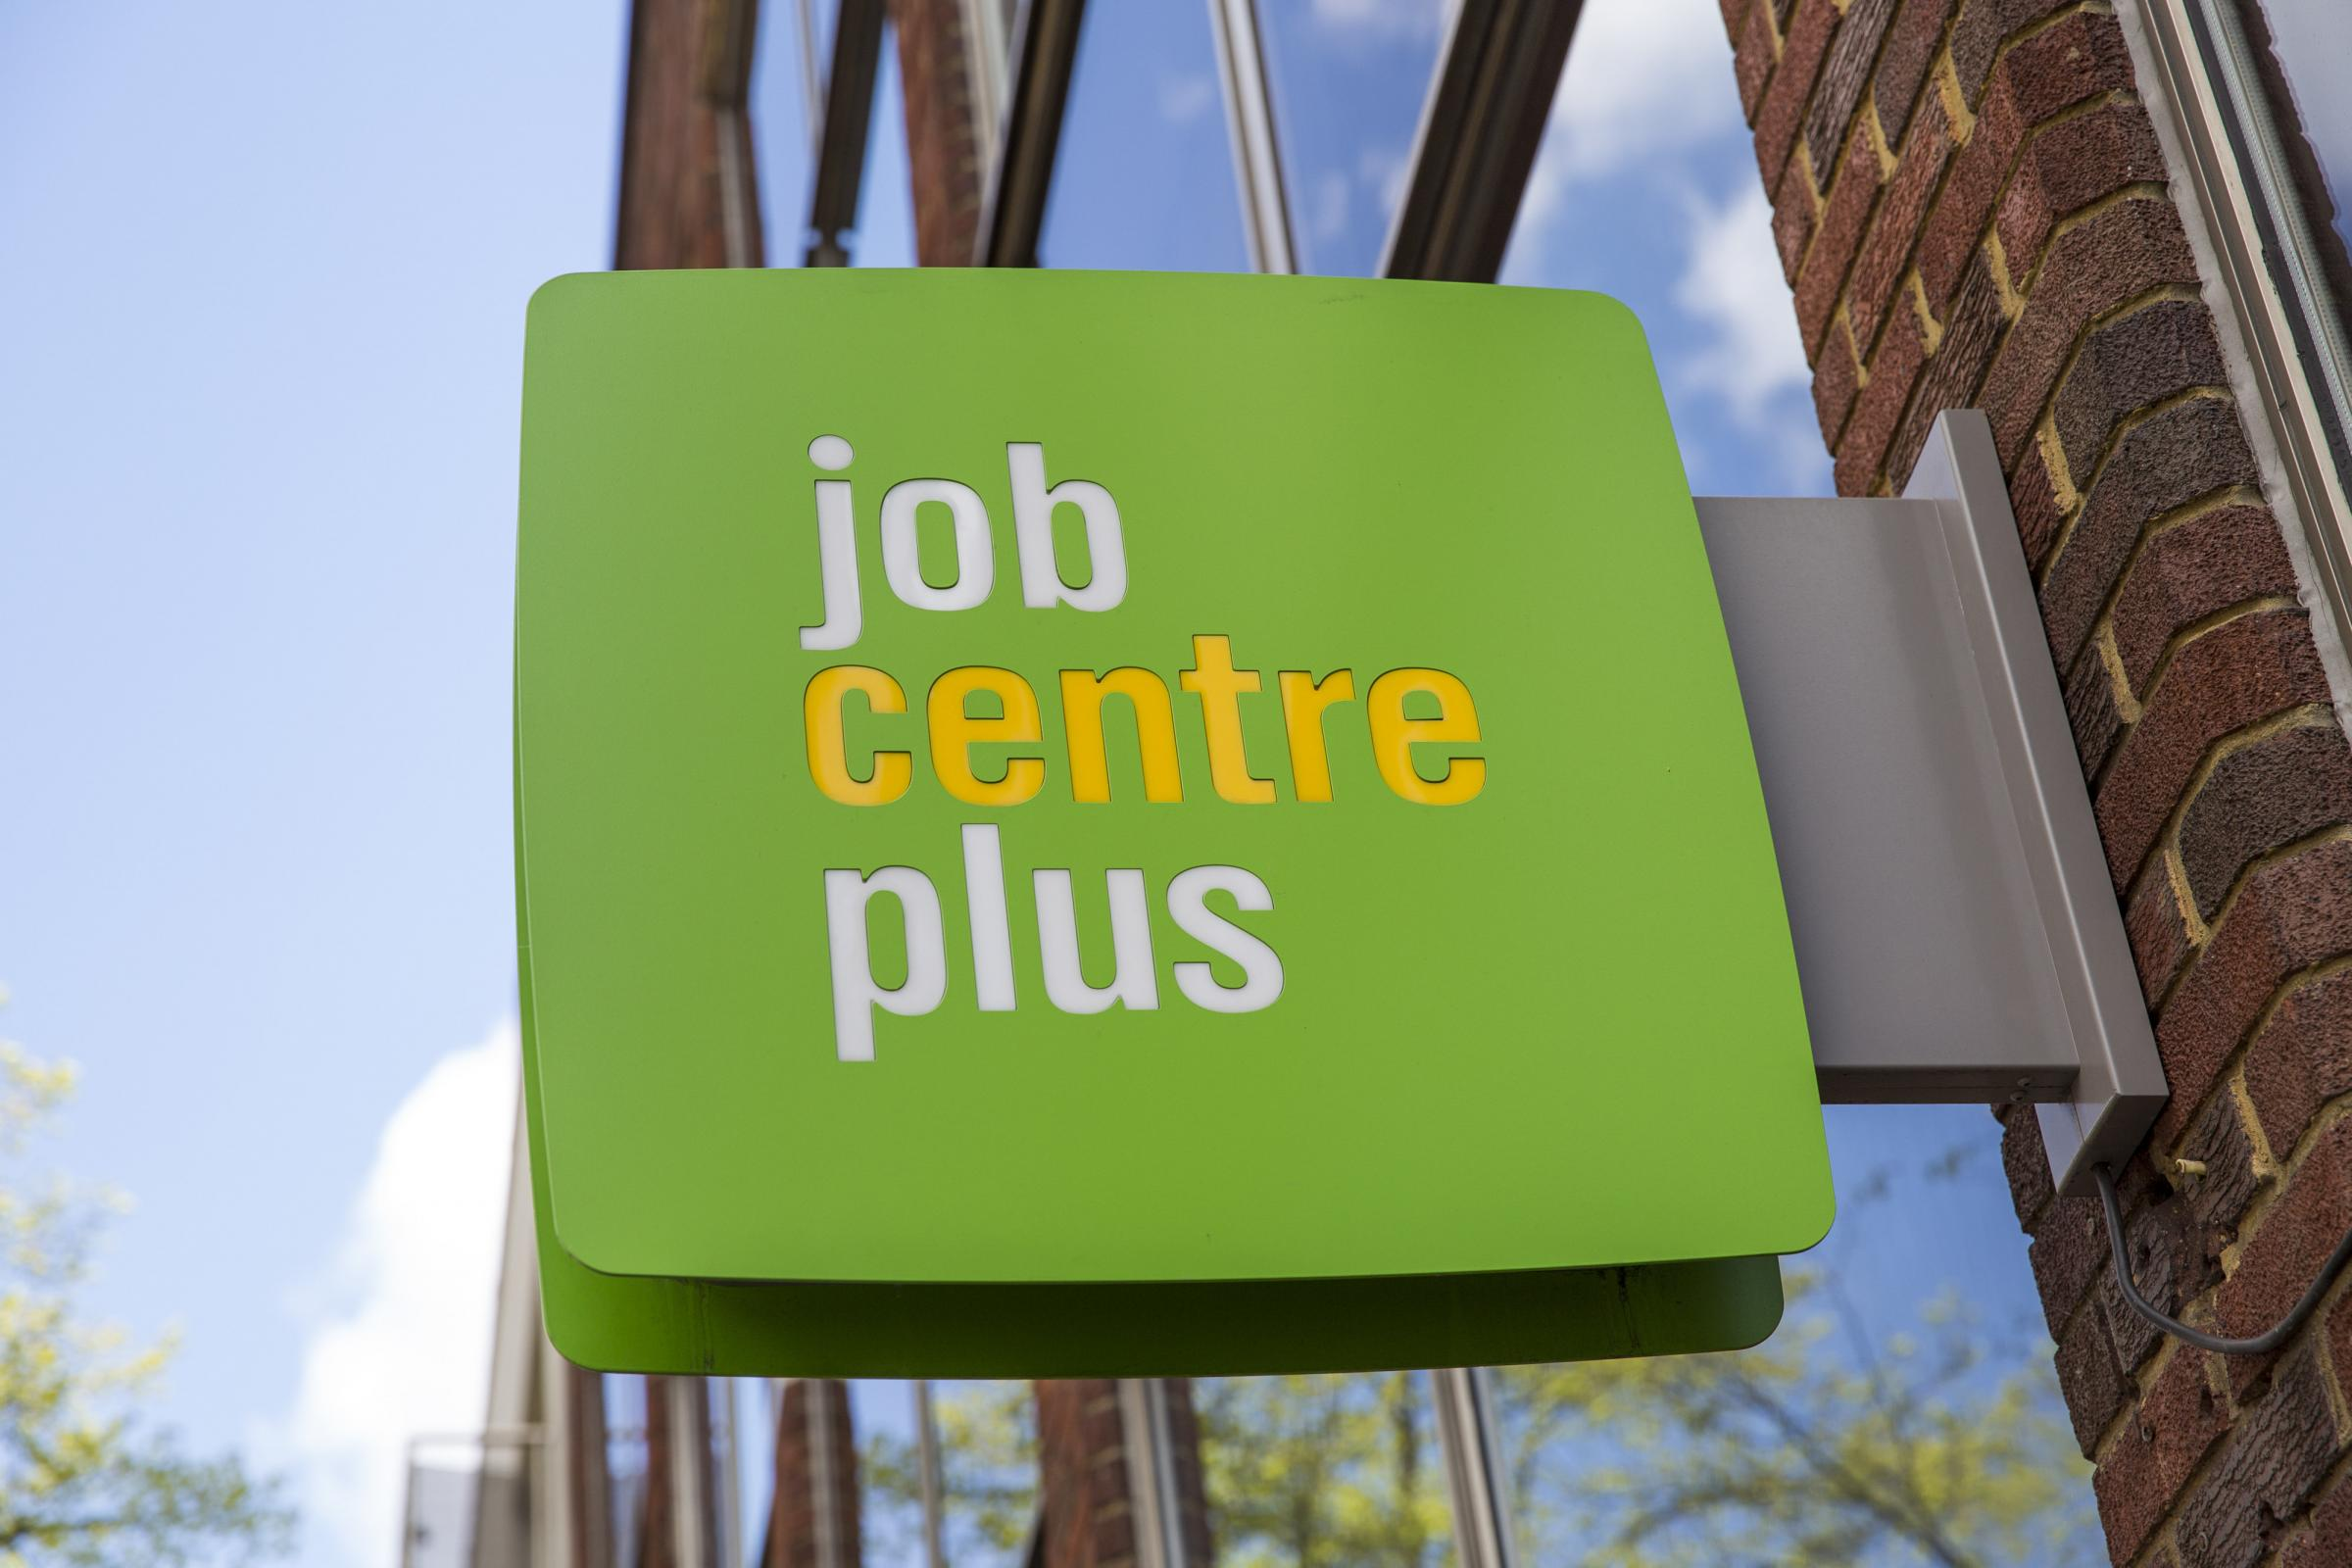 Town's labour market is 'buoyant' as fresh figures show drop in jobless claims